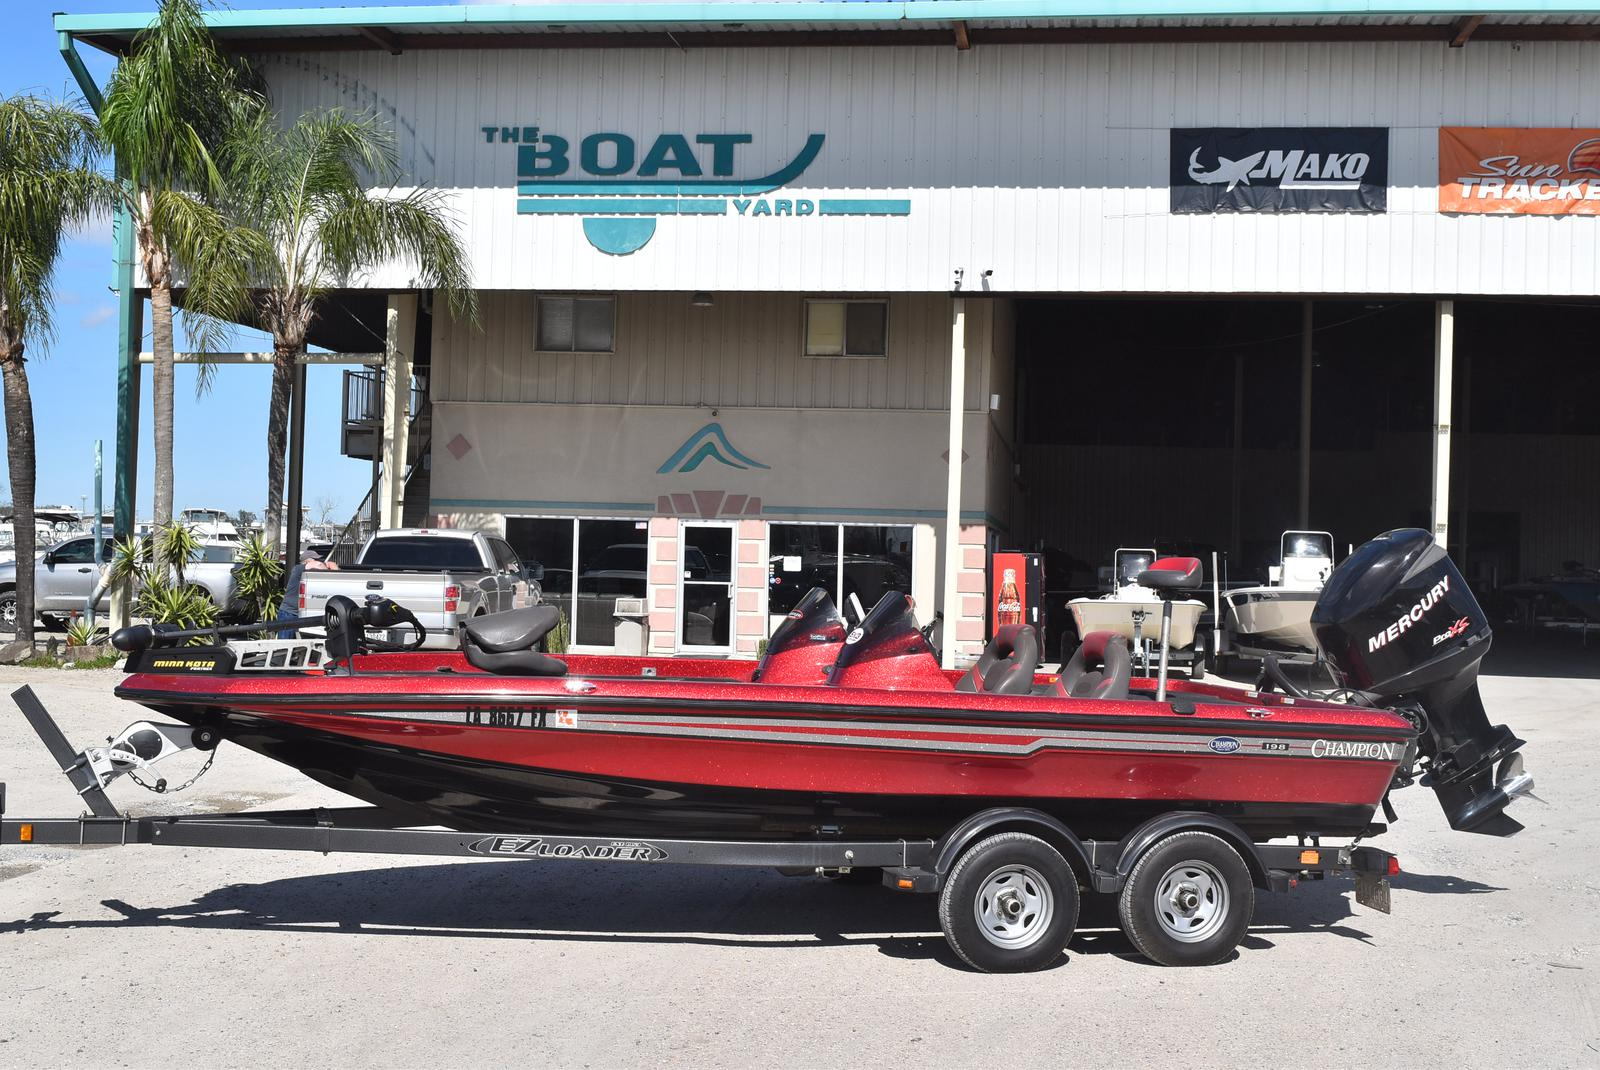 2006 Champion boat for sale, model of the boat is 198 DCX ELITE & Image # 1 of 20